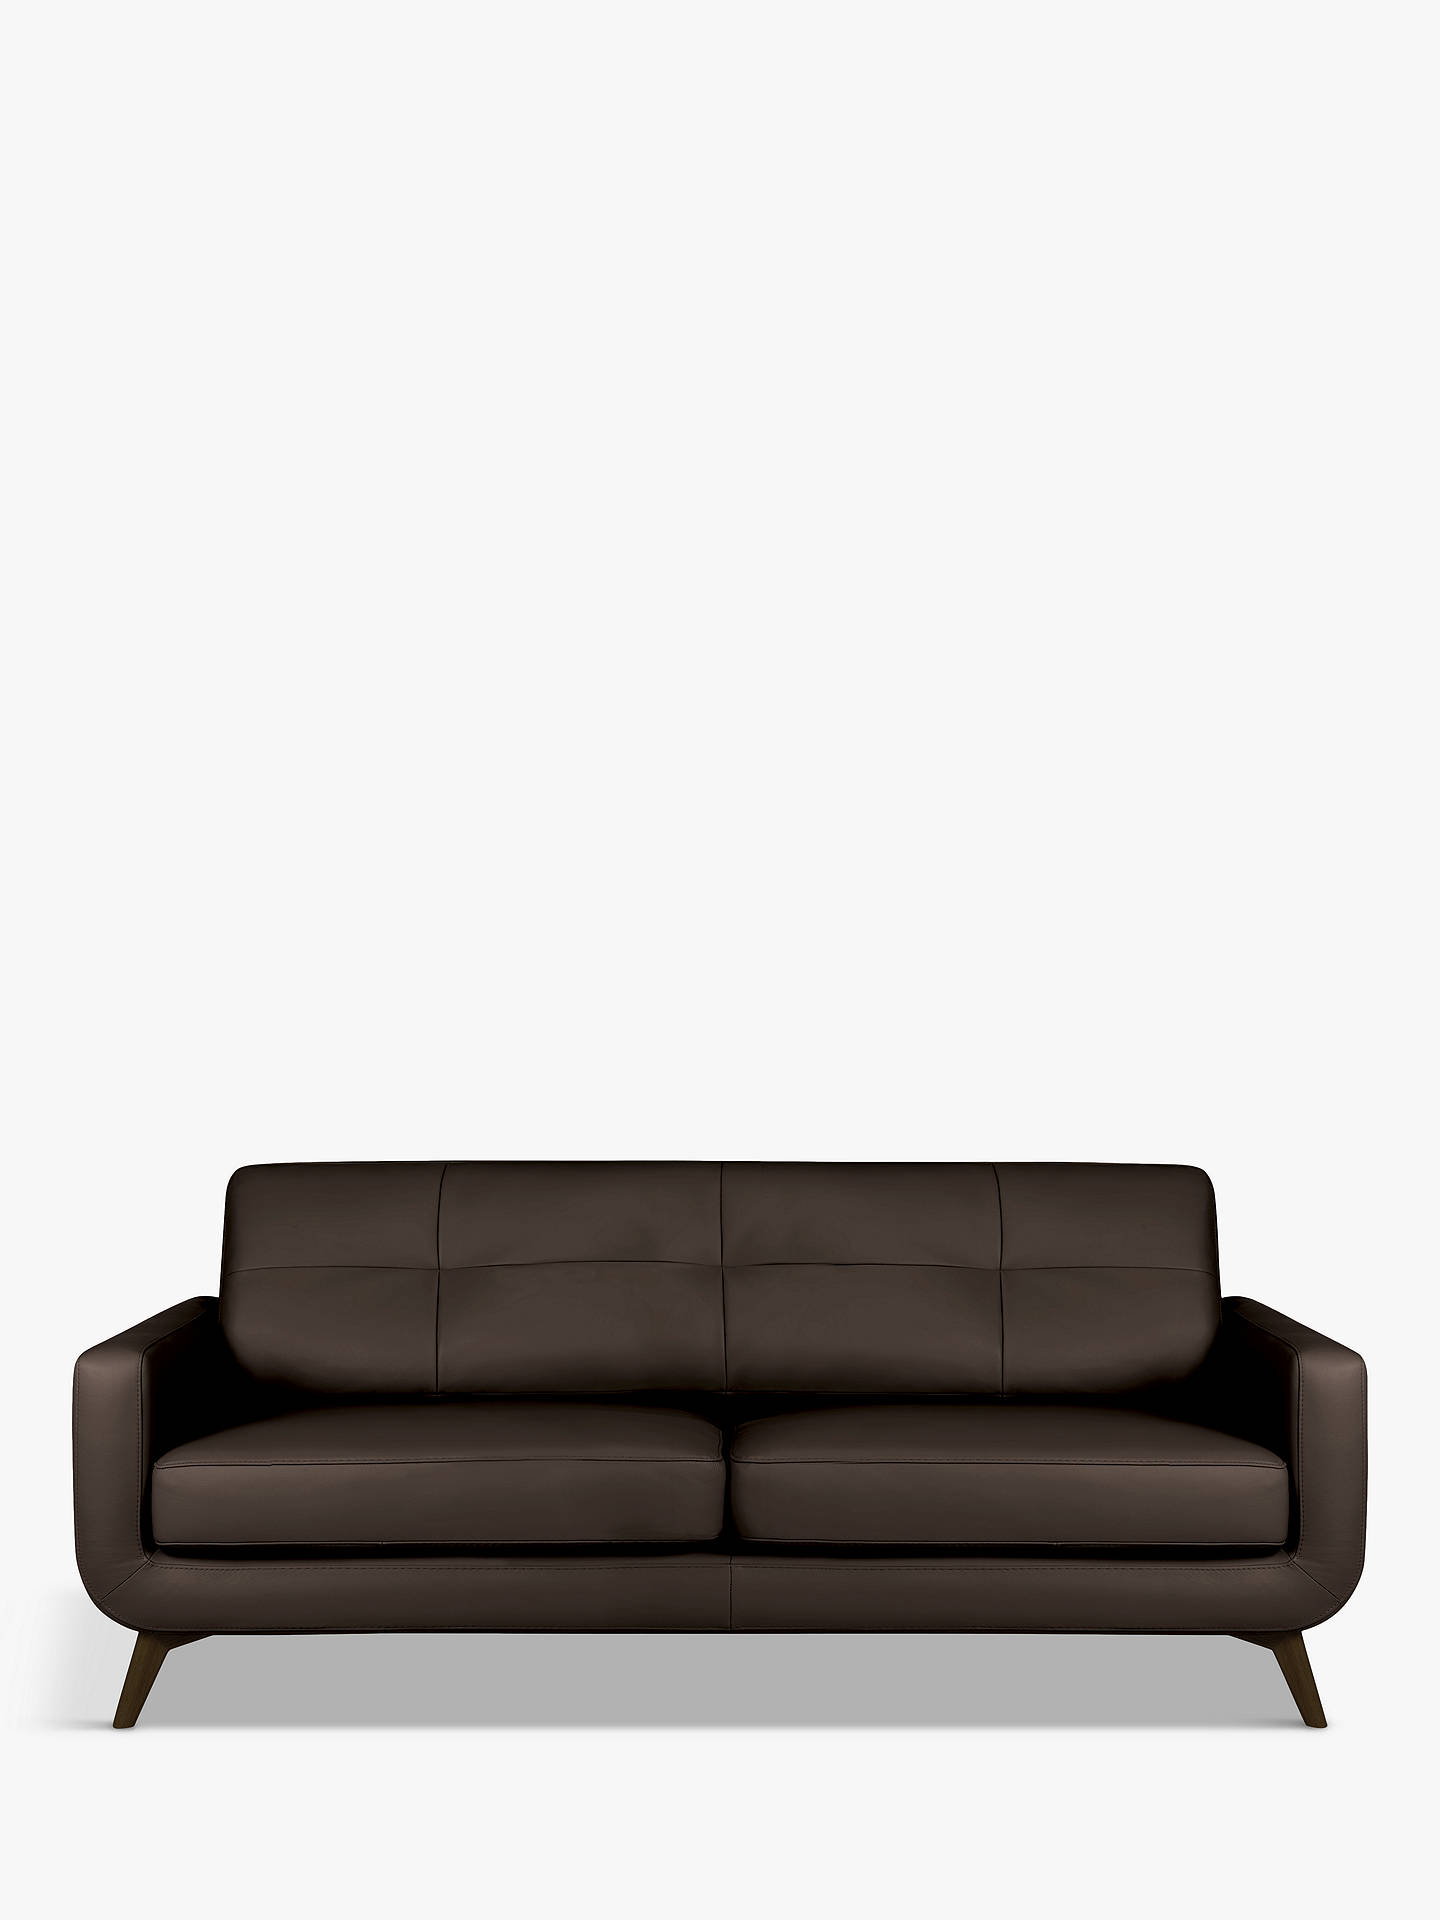 Buy John Lewis & Partners Barbican Large 3 Seater Leather Sofa, Dark Leg, Contempo Dark Chocolate Online at johnlewis.com